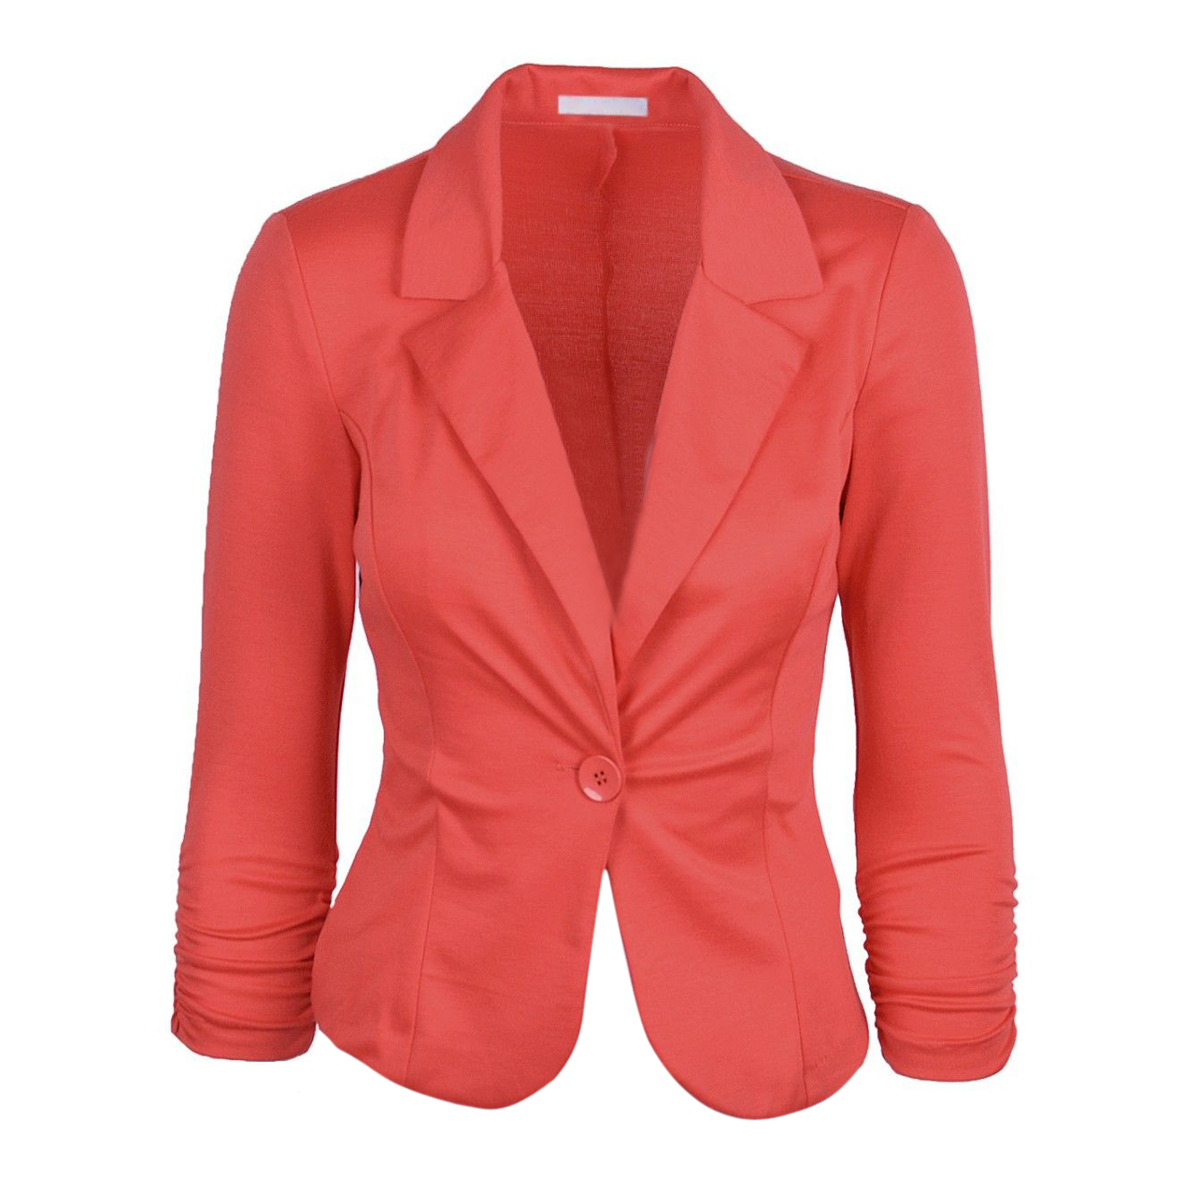 2018 NEW Womens Blazer Jacket Long Sleeve Candy Button Coral